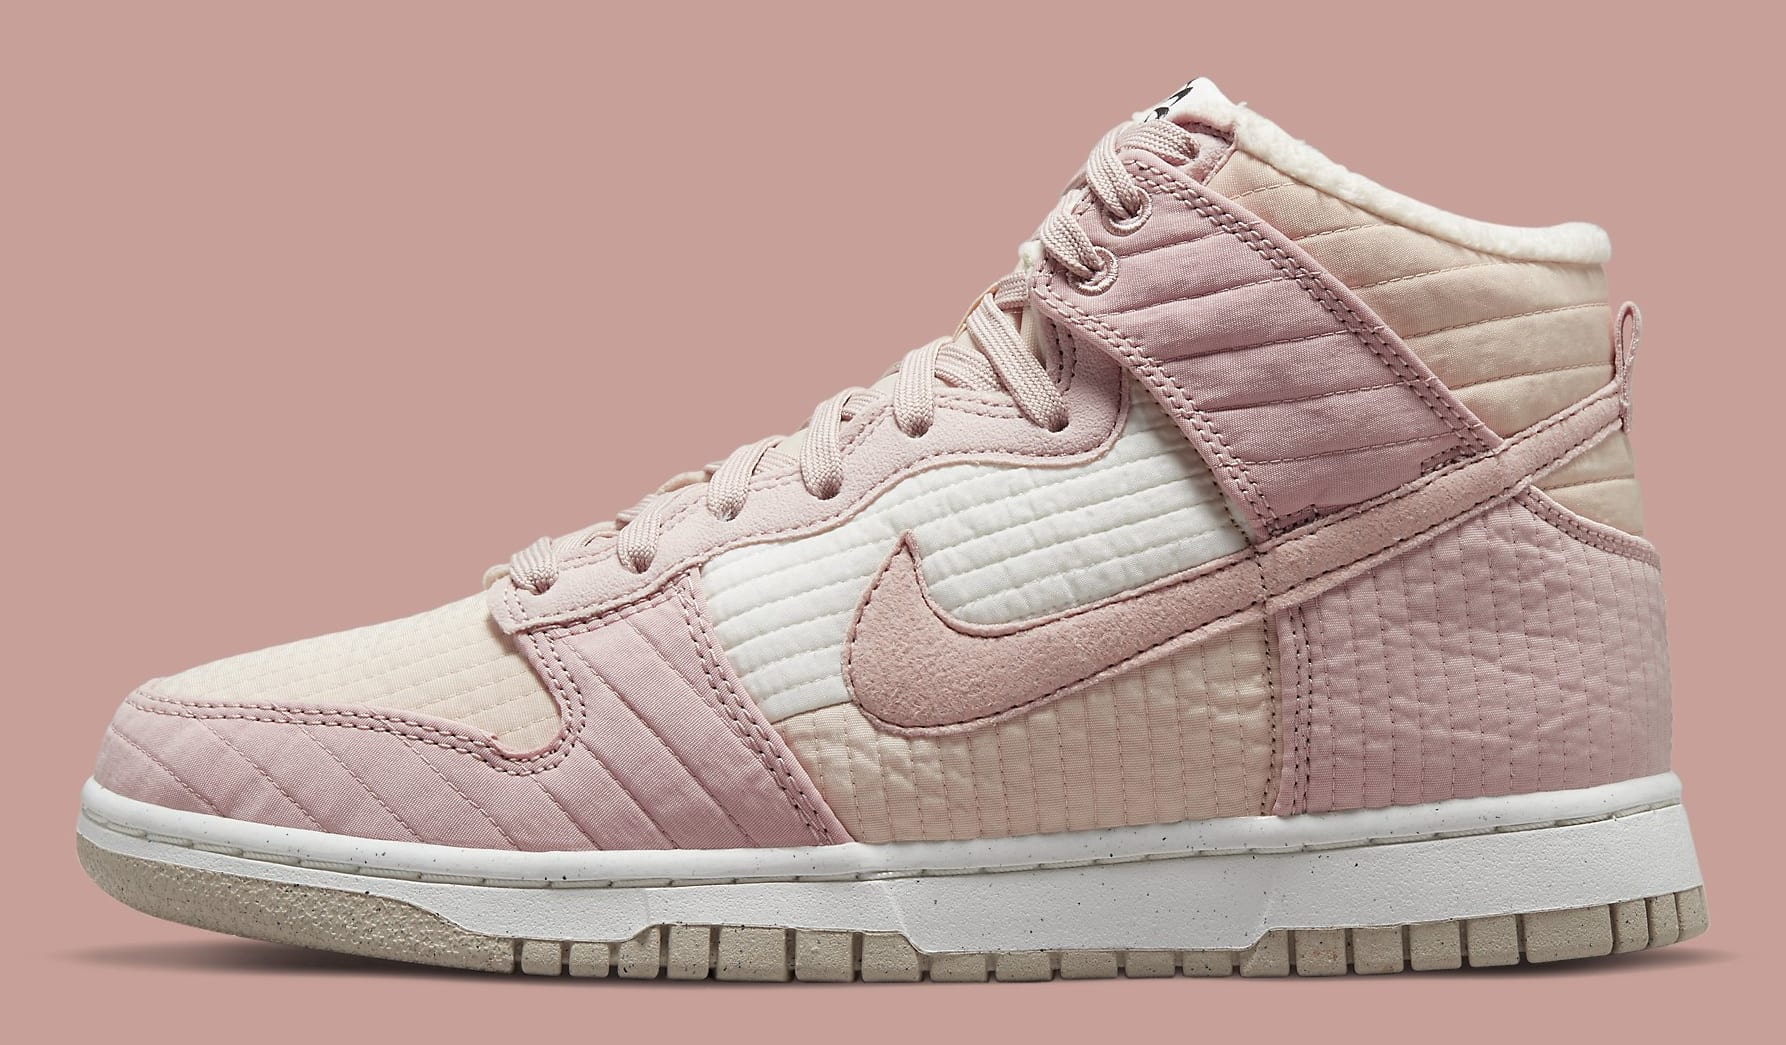 Nike Dunk High Toasty Pink DN9909-200 Release Date Profile